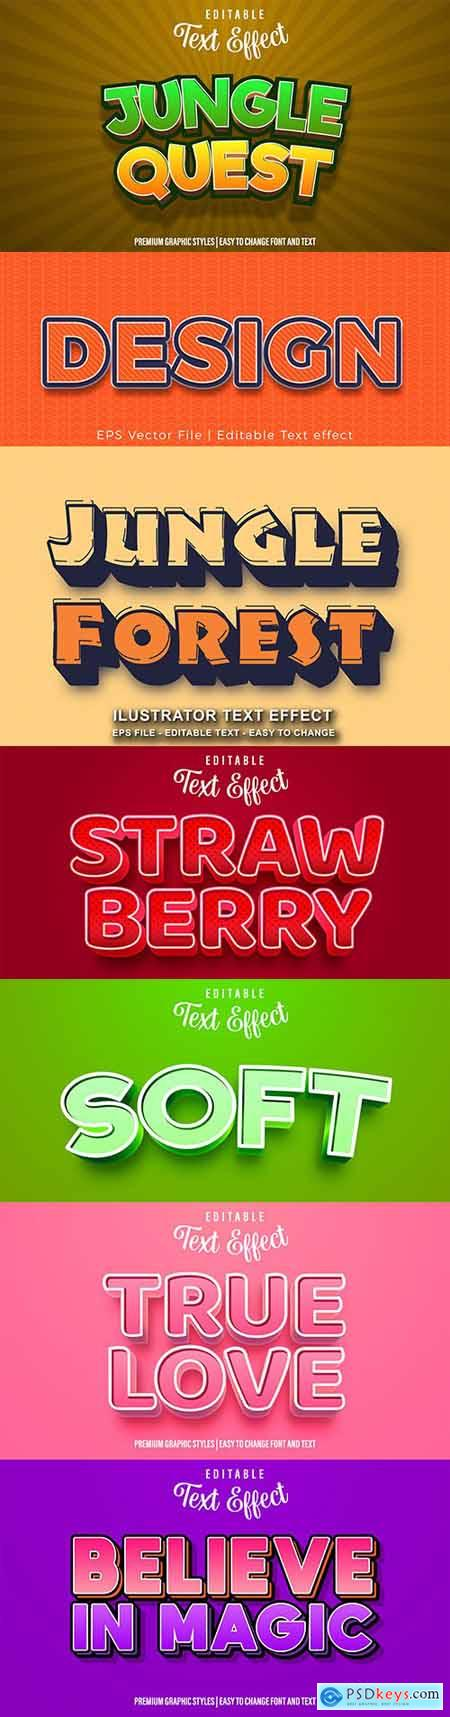 Editable font effect text collection illustration design 112